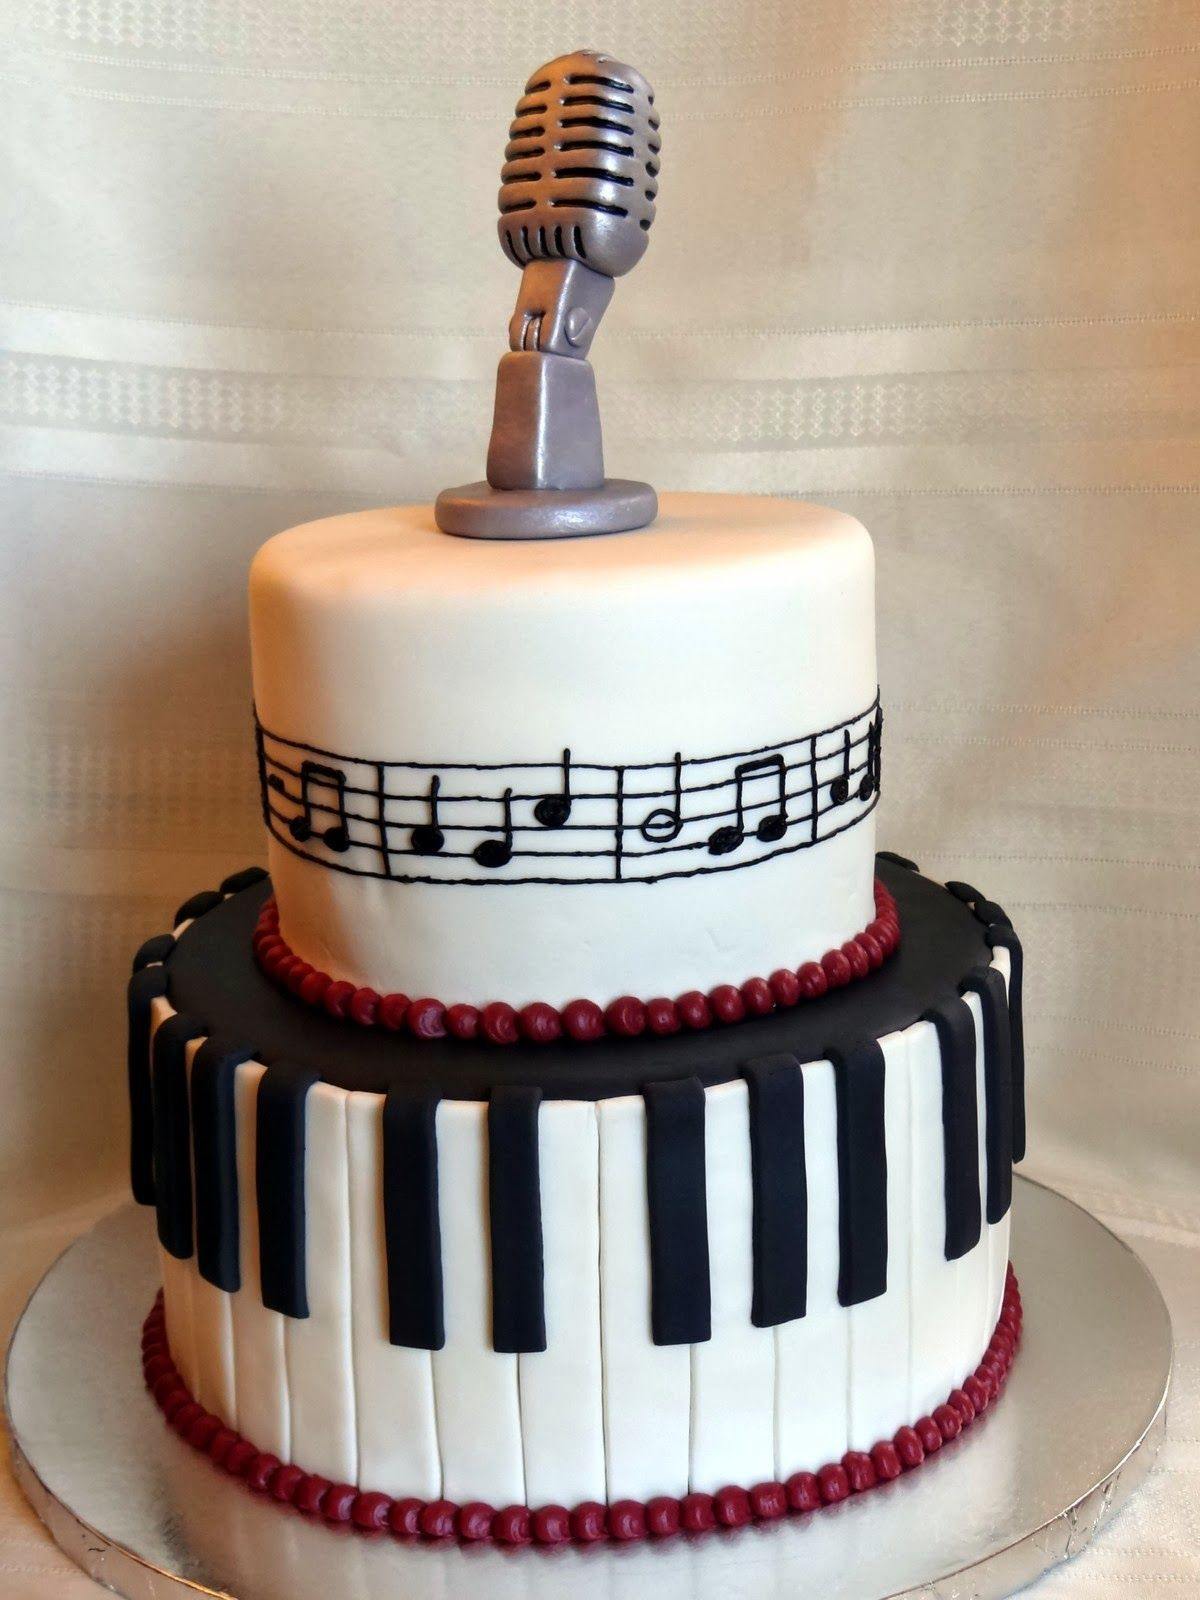 hight resolution of tiers of joy cakery music cake with keyboard microphone music microphone cupcake toppers edible also turner microphone wiring